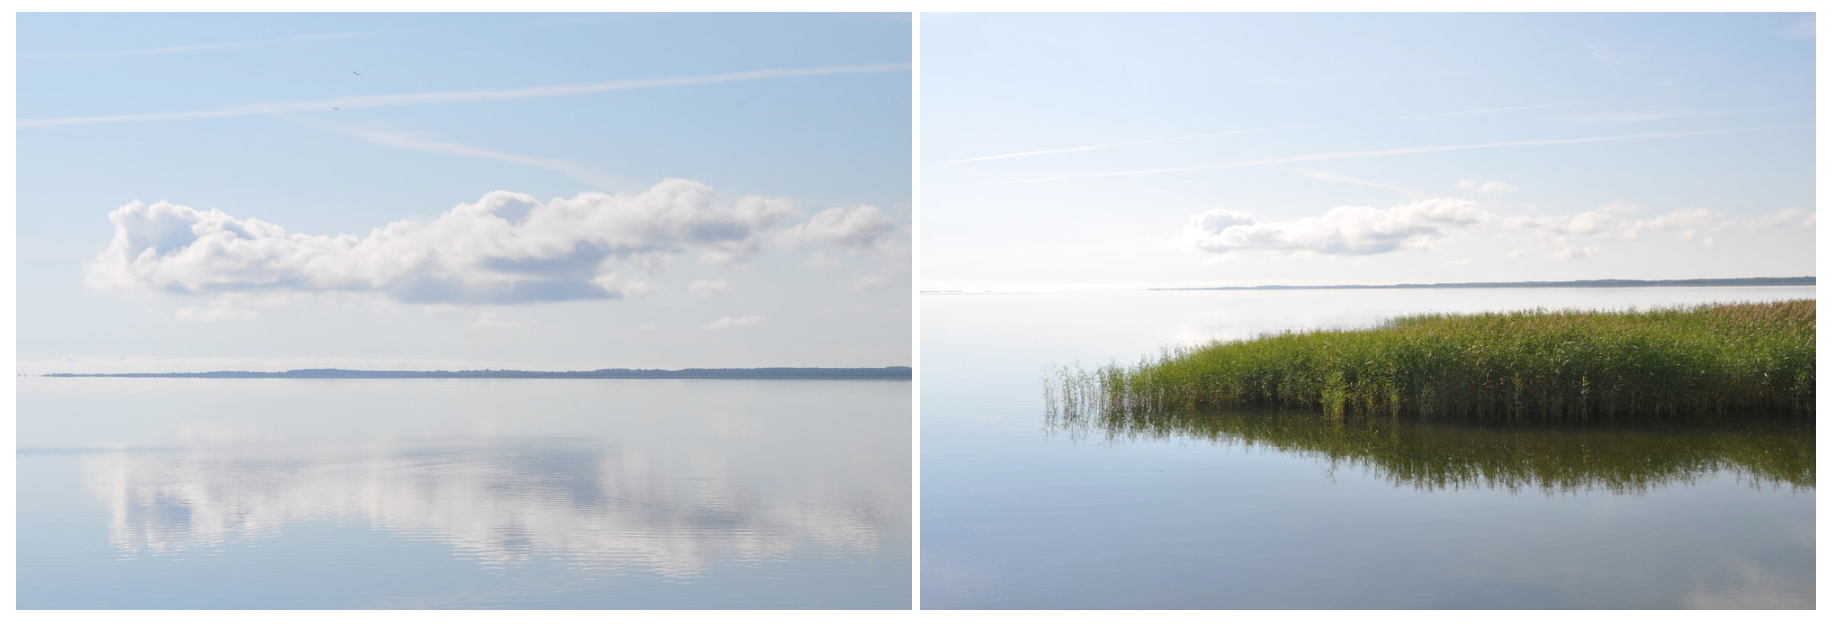 The Vaike Vain, the channel that separates Muhu Island from Saaremaa. Photos: Meg Pier